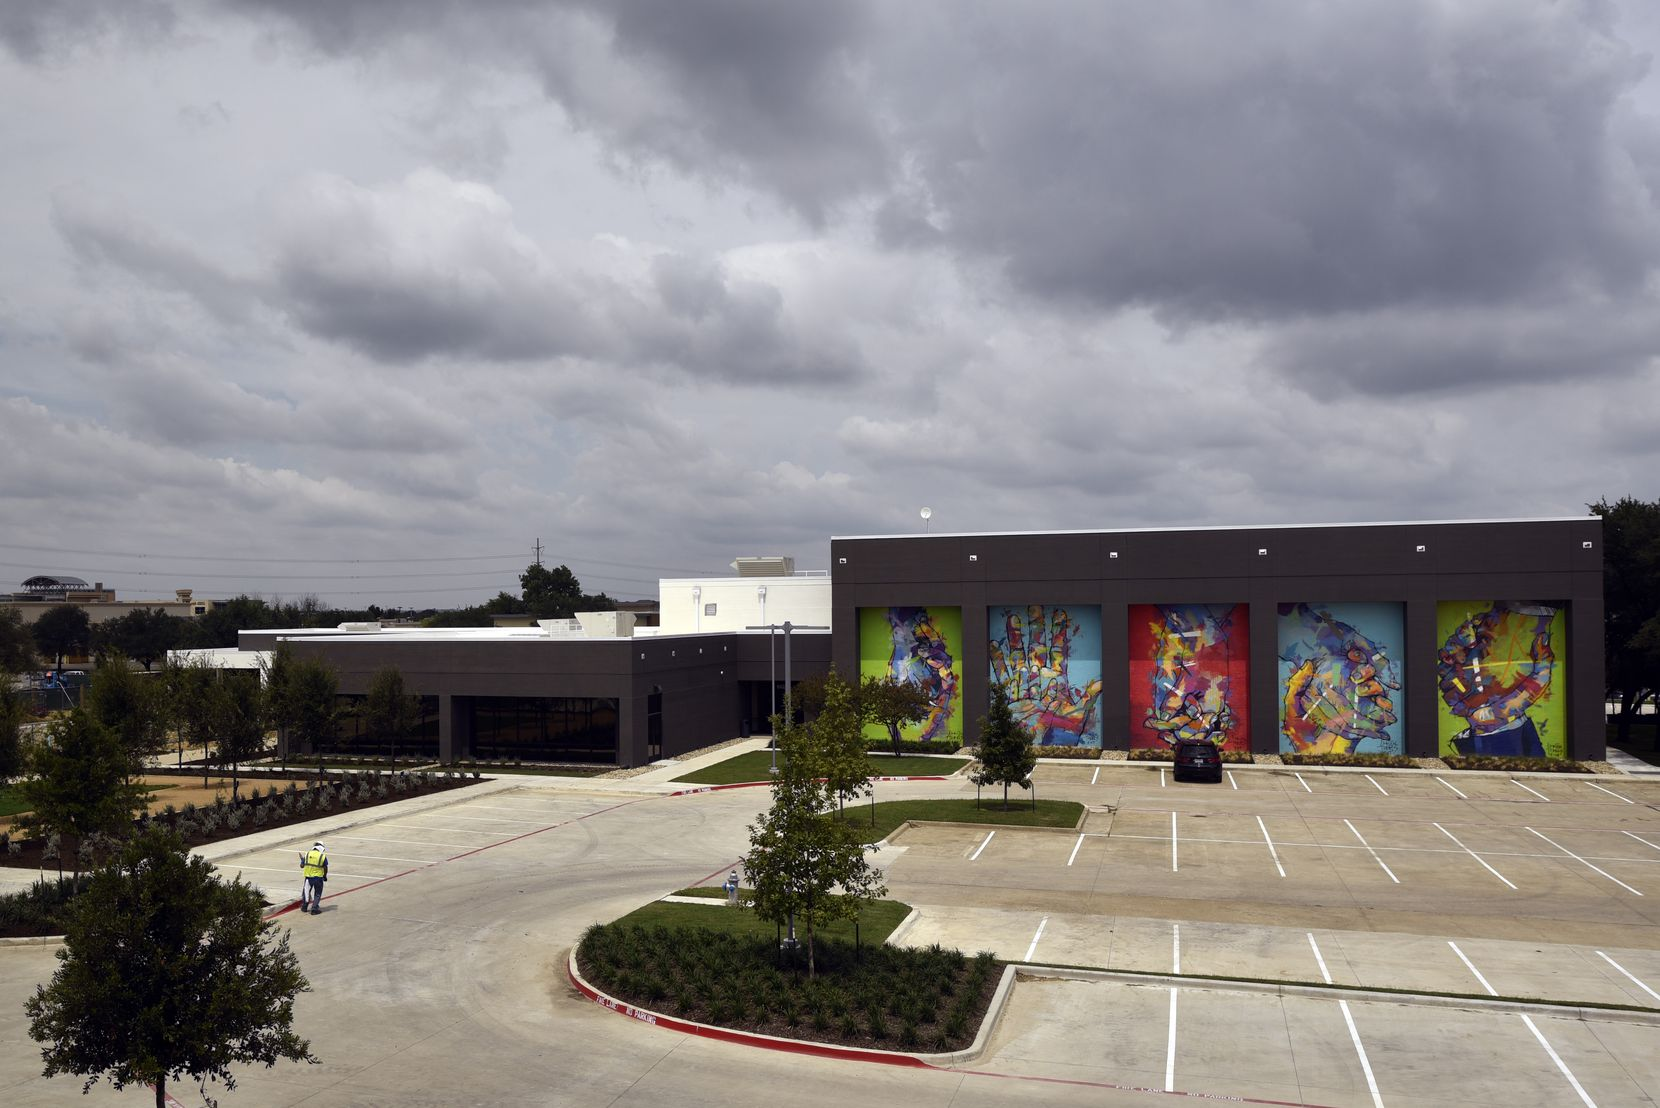 Legacy Central is a mixed-use redevelopment of the old Texas Instruments campus on U.S. 75